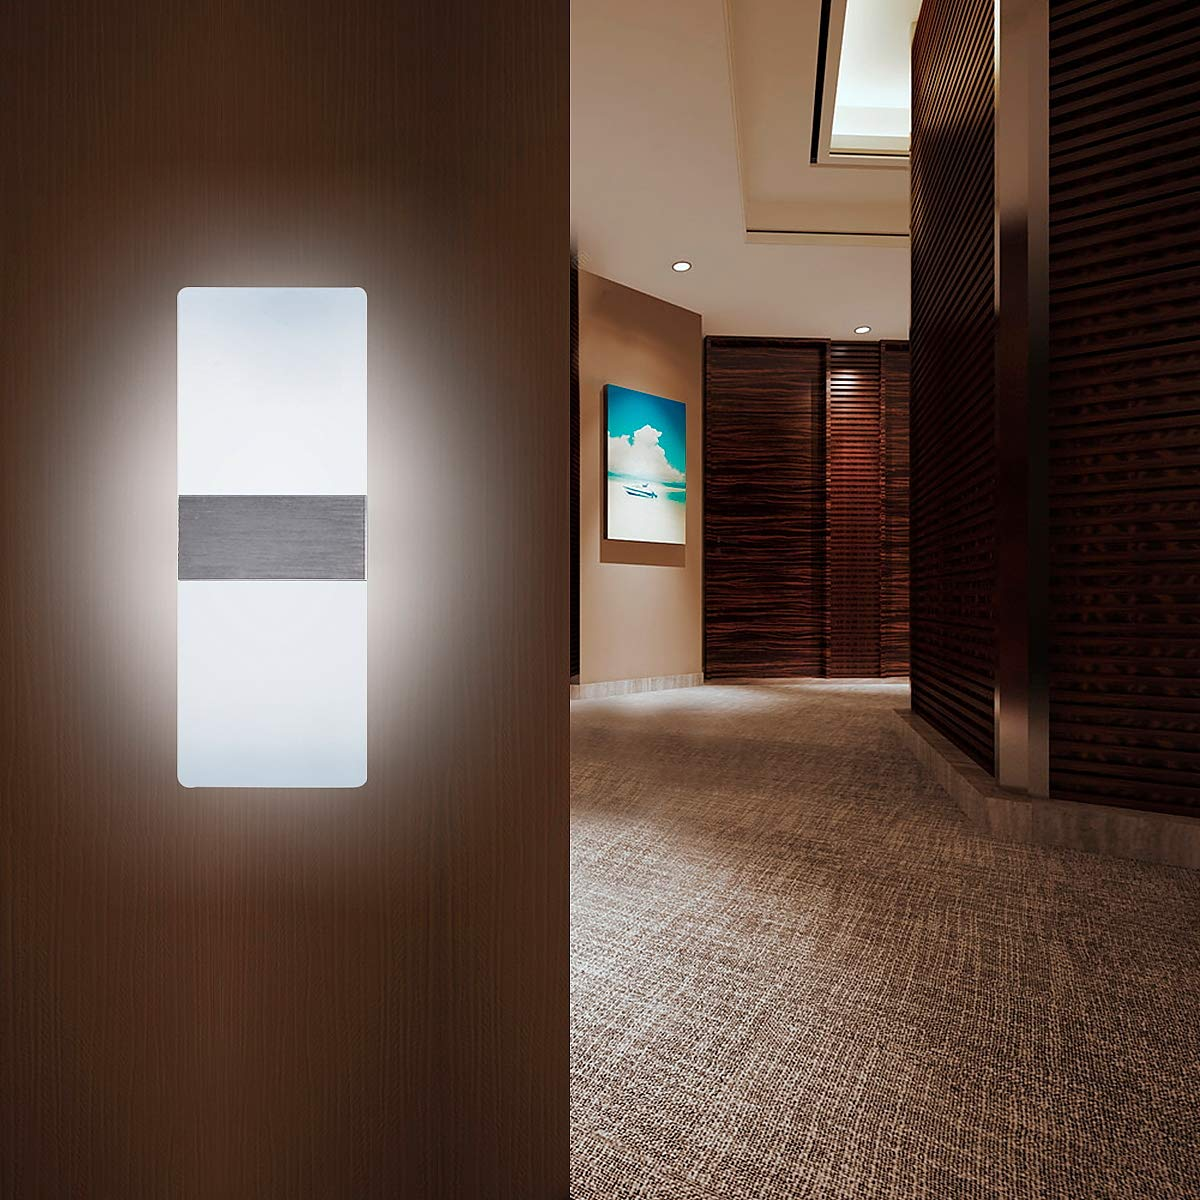 Set of 2 Led Wall Sconces Light Modern and Fashion Cool White Led Wall Light for Bedroom Living Room Balcony Porch Office Hotel and Hallway 11.4 x 4.3 12W, 6000K Kernorv Modern Wall Sconce